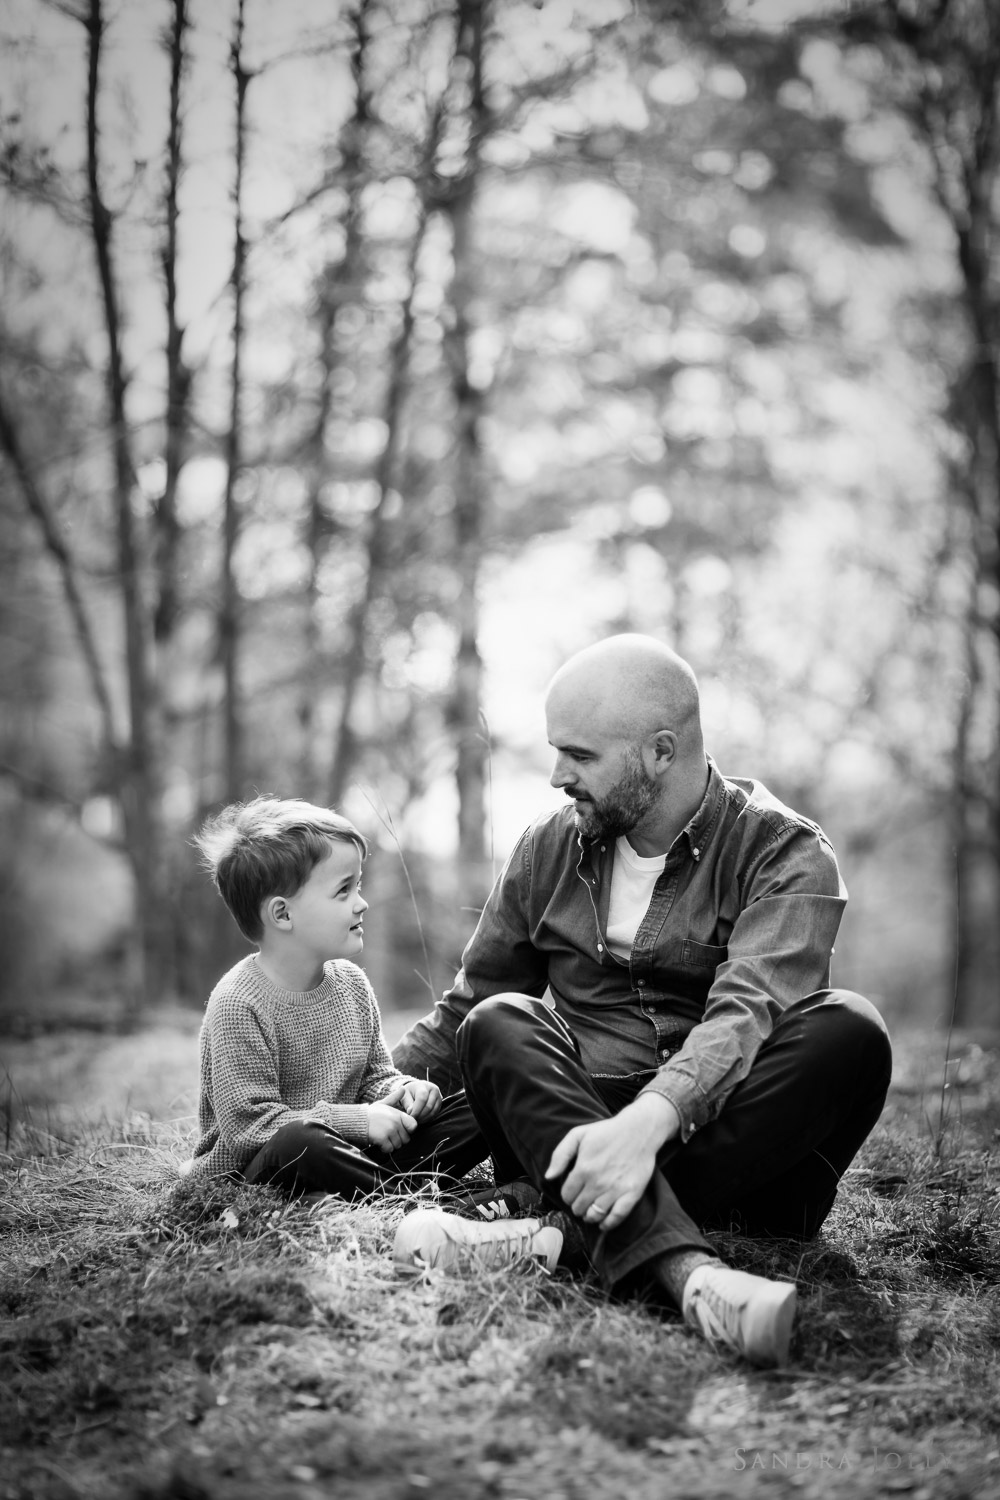 father-and-son-by-sandra-jolly-photography.jpg